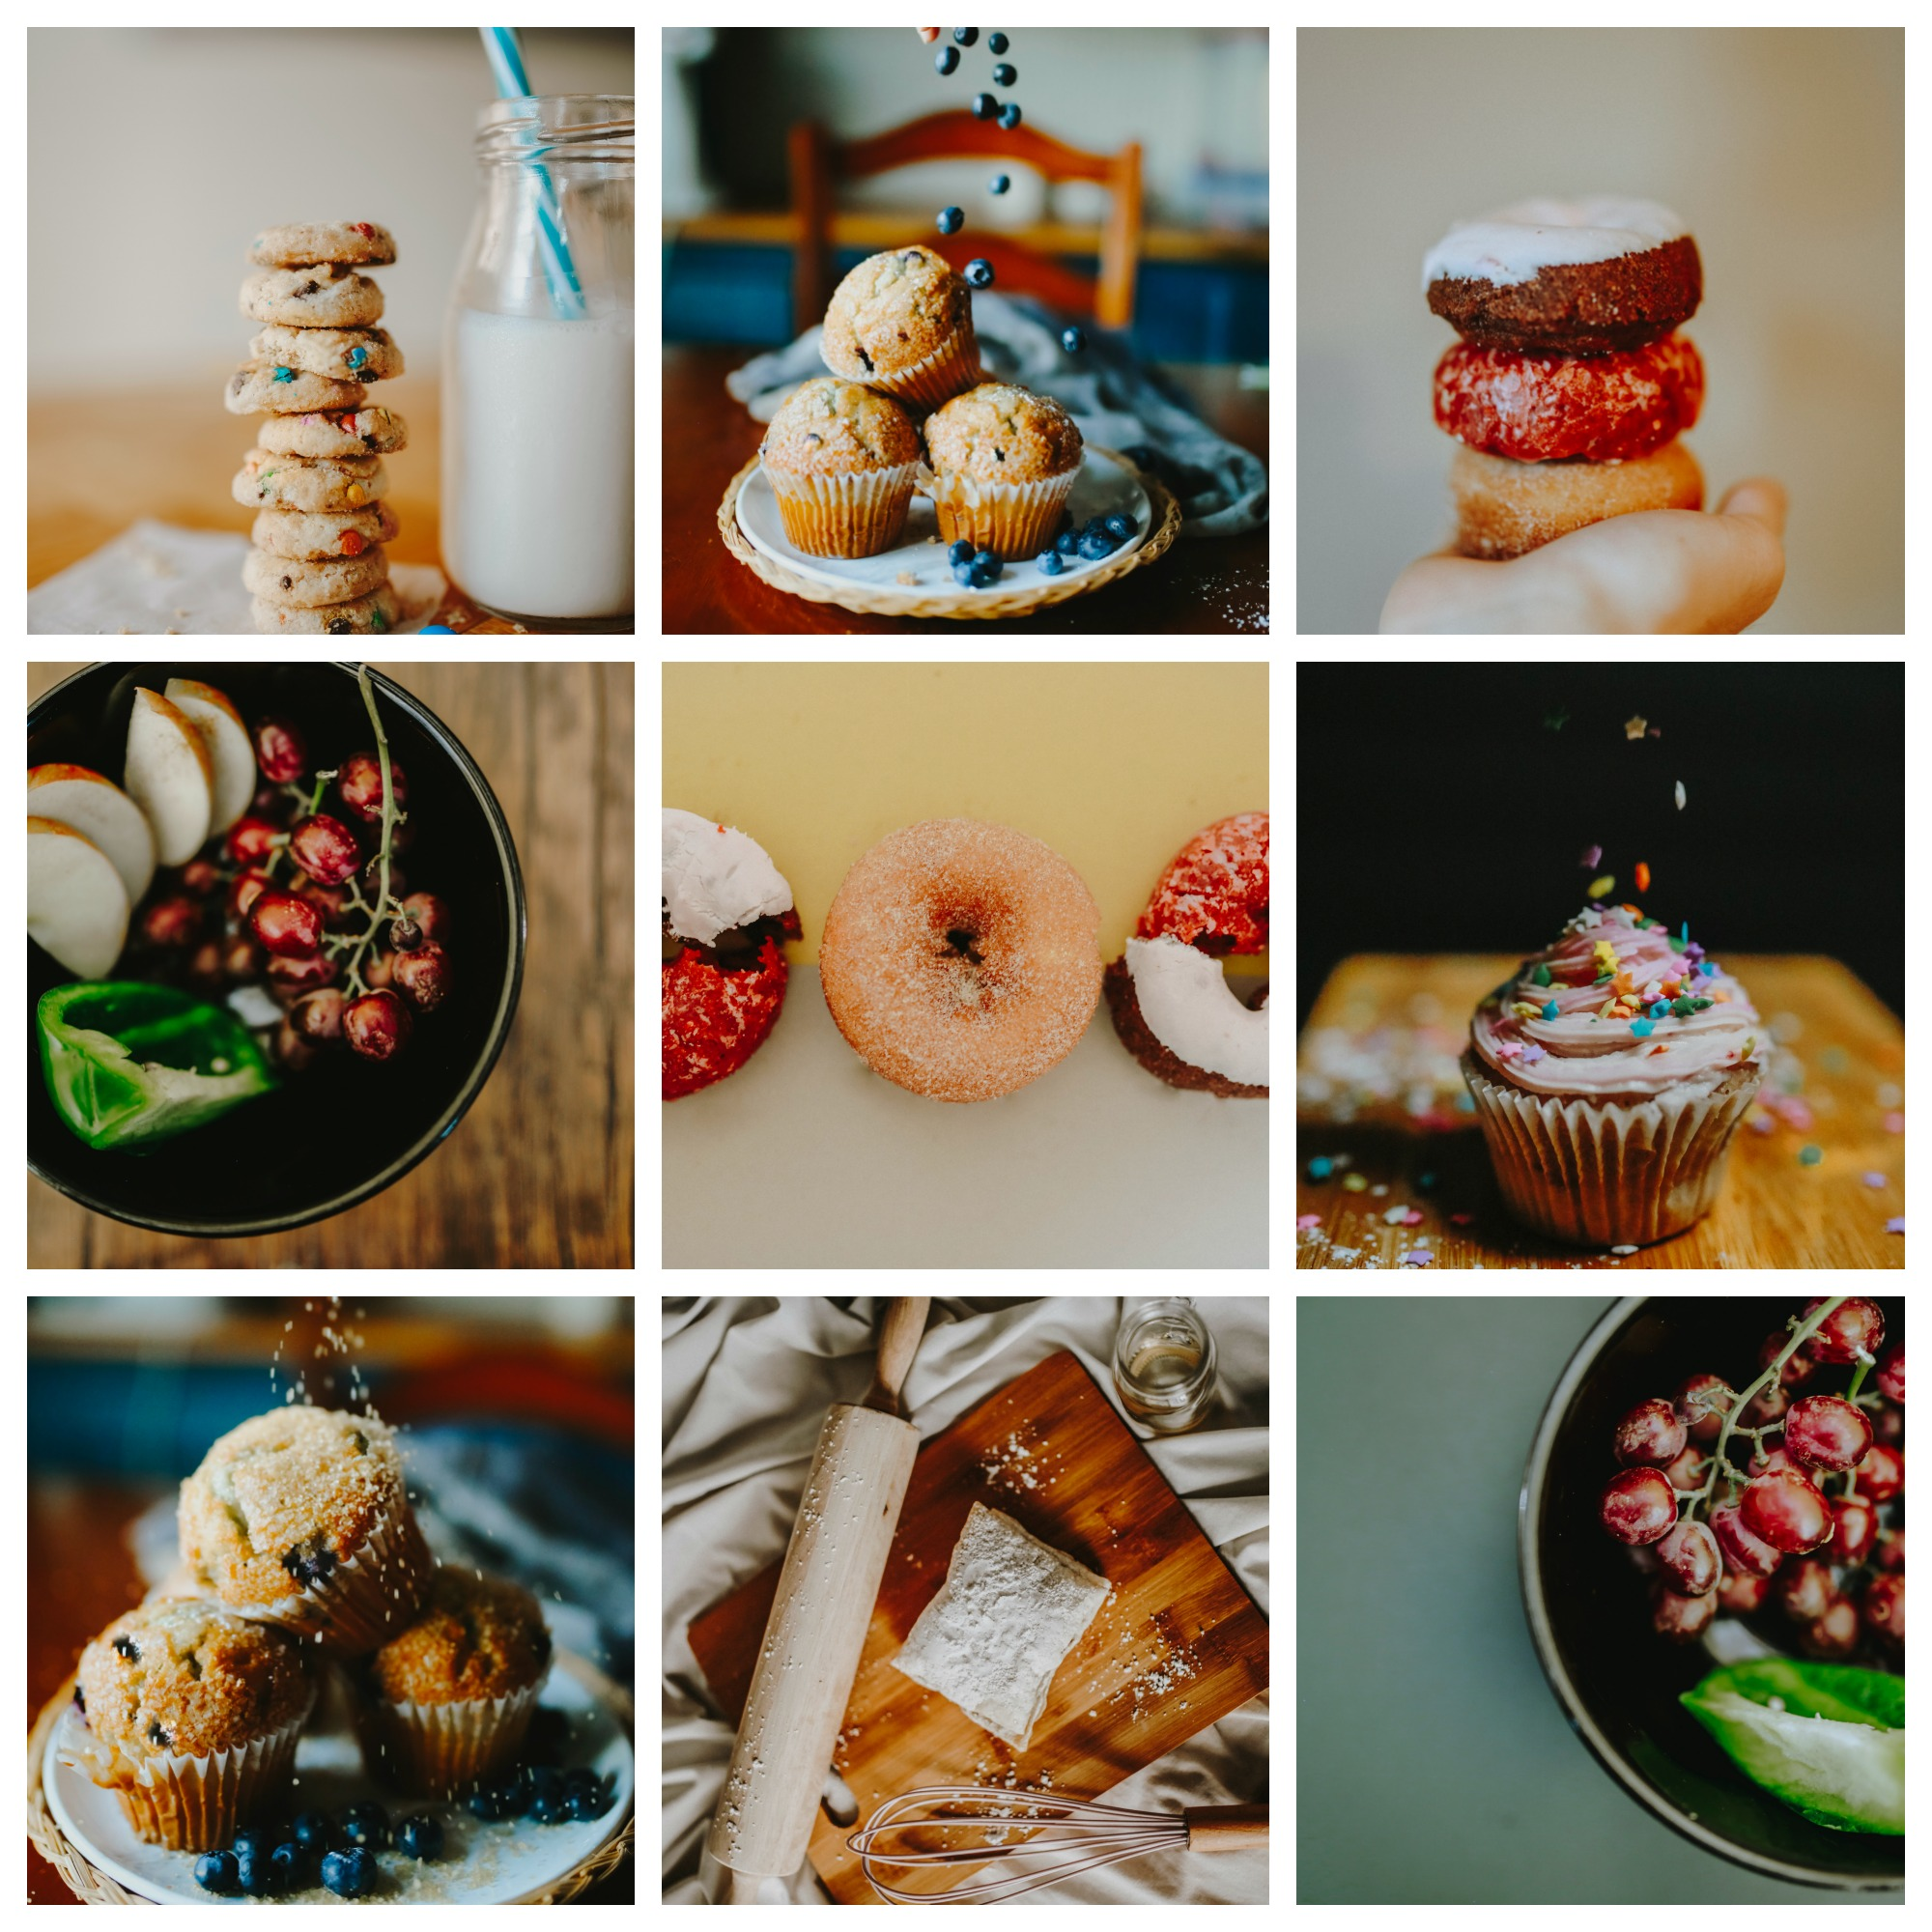 Instagram food Mock up one: - Examples of what an instagram page I put together can look like aesthetically. This example has a mix of red, blue, and green undertones.